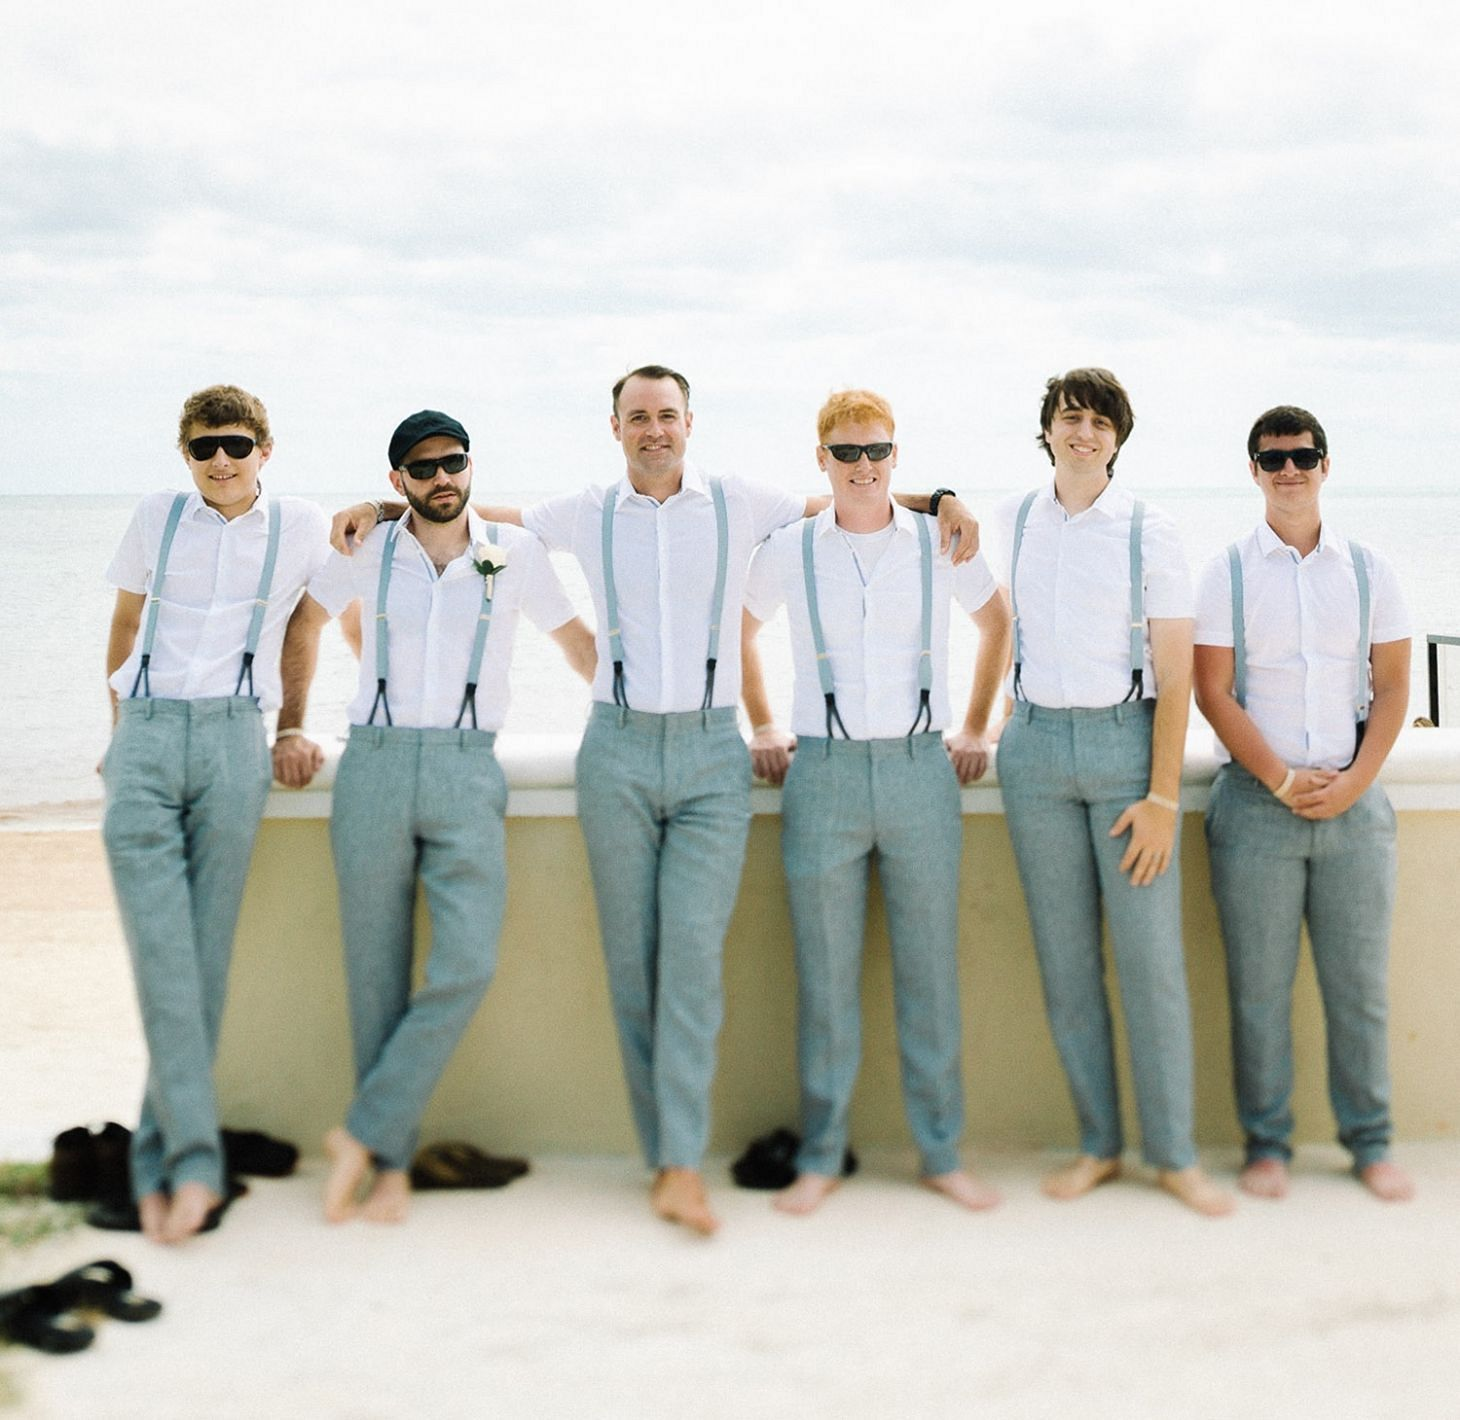 Top 28 Casual Wedding Groomsmen For Most Awesome Wedding